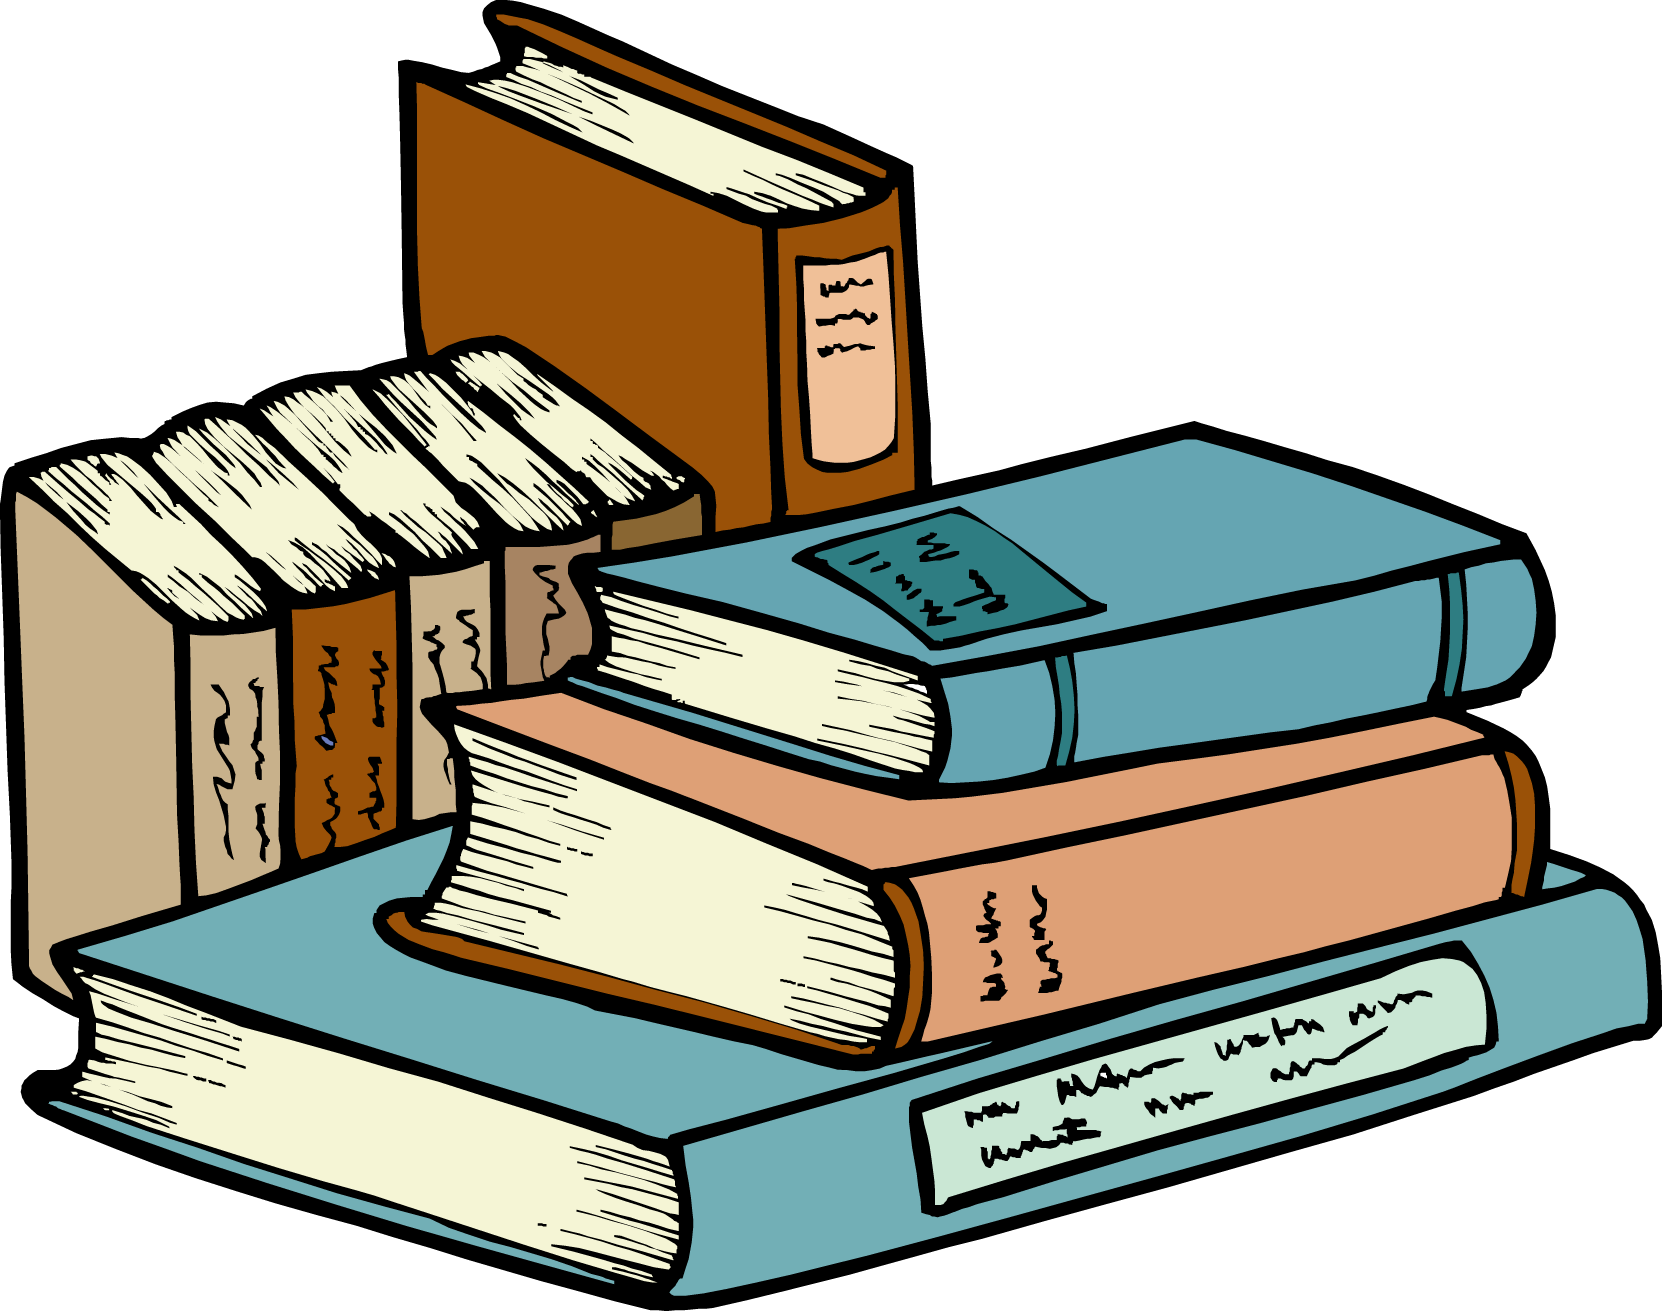 Book clipart book stack On #3 Free Books Stack